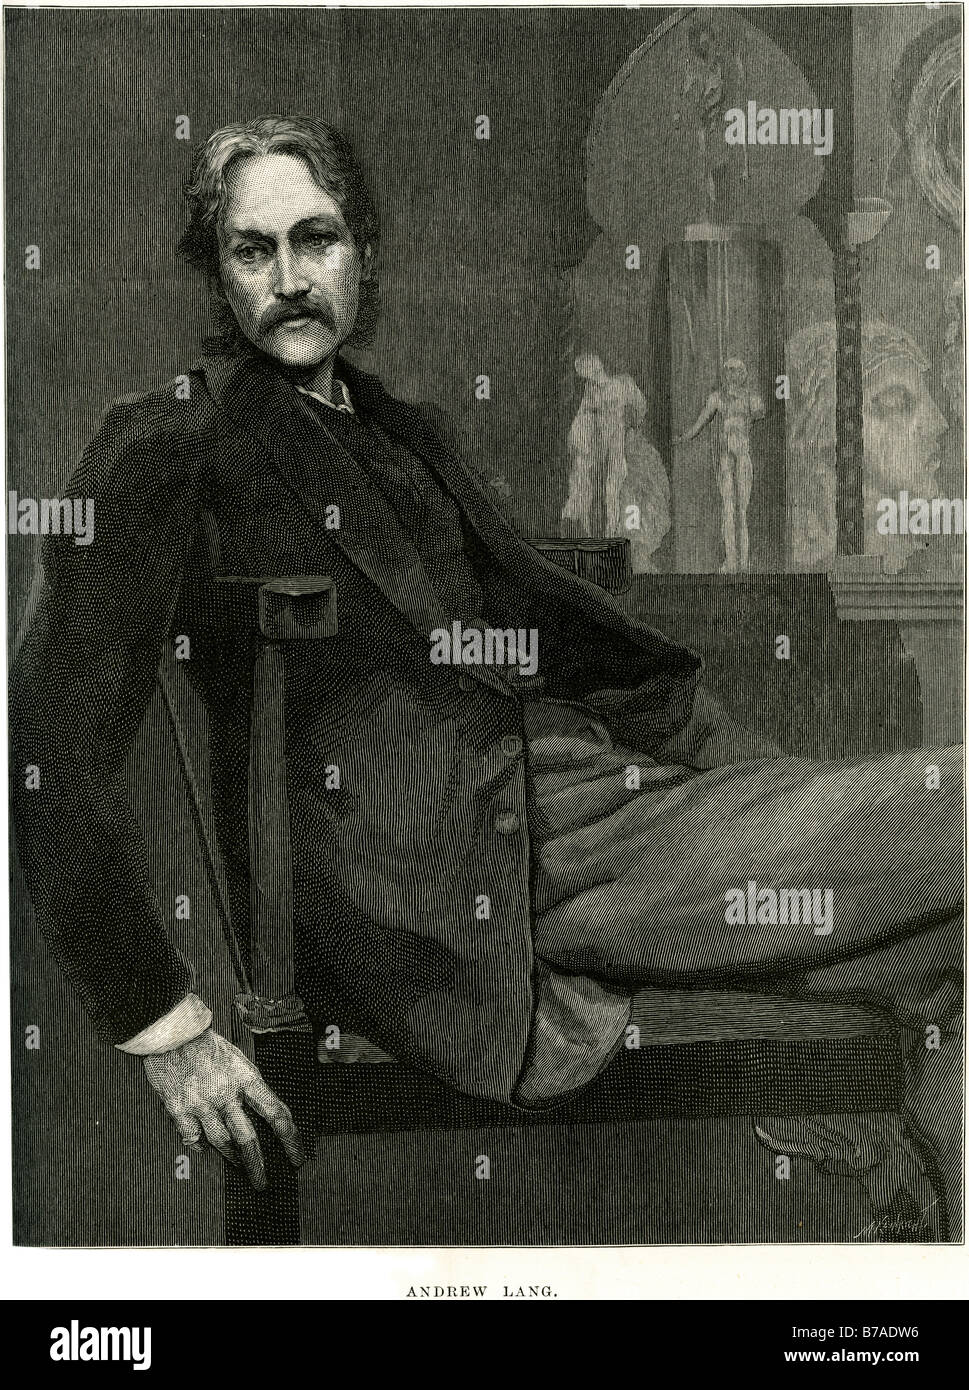 Andrew Lang 31 March 1844, Selkirk – 20 July 1912 Banchory Kincardineshire was a prolific Scots man of letters. - Stock Image